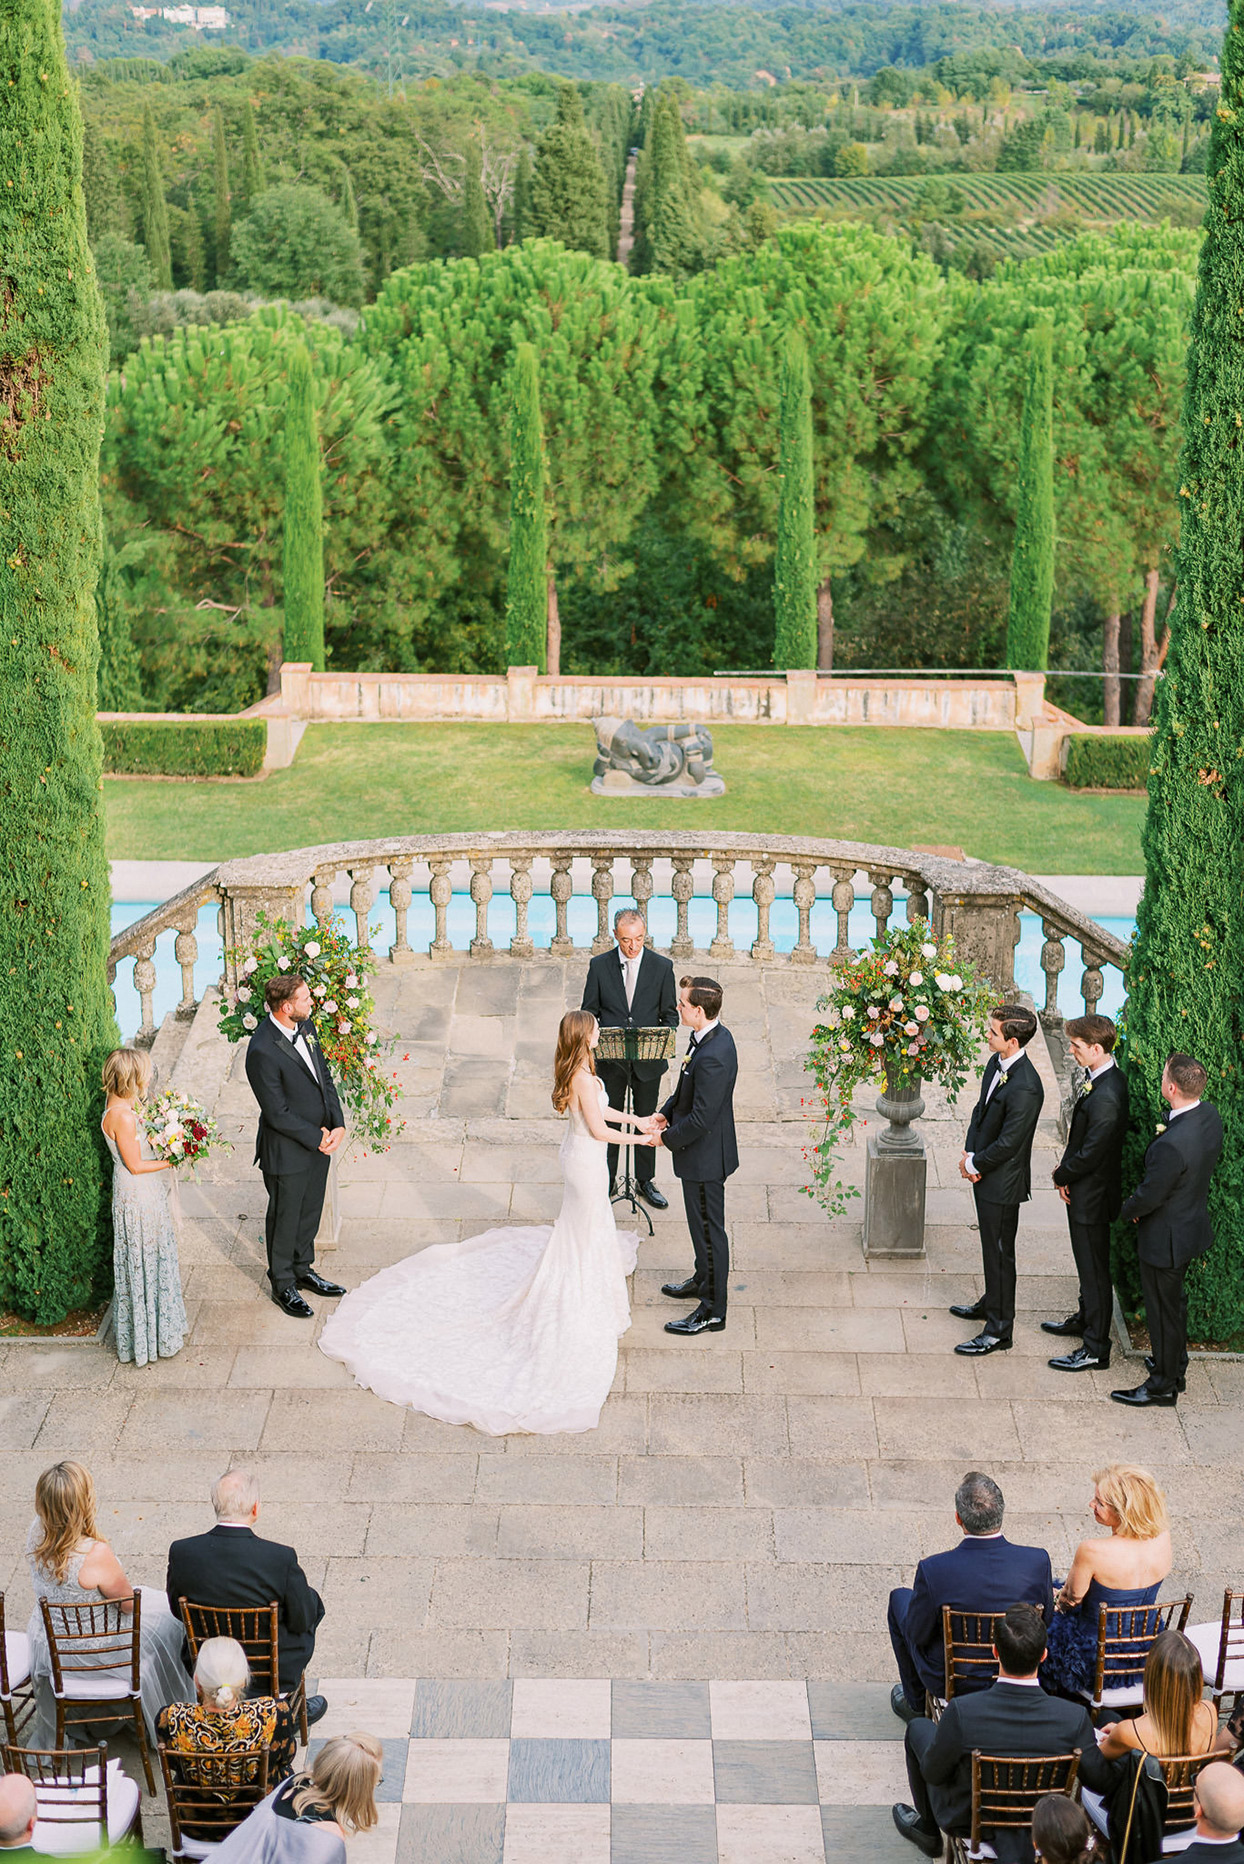 ally brian wedding ceremony overhead view